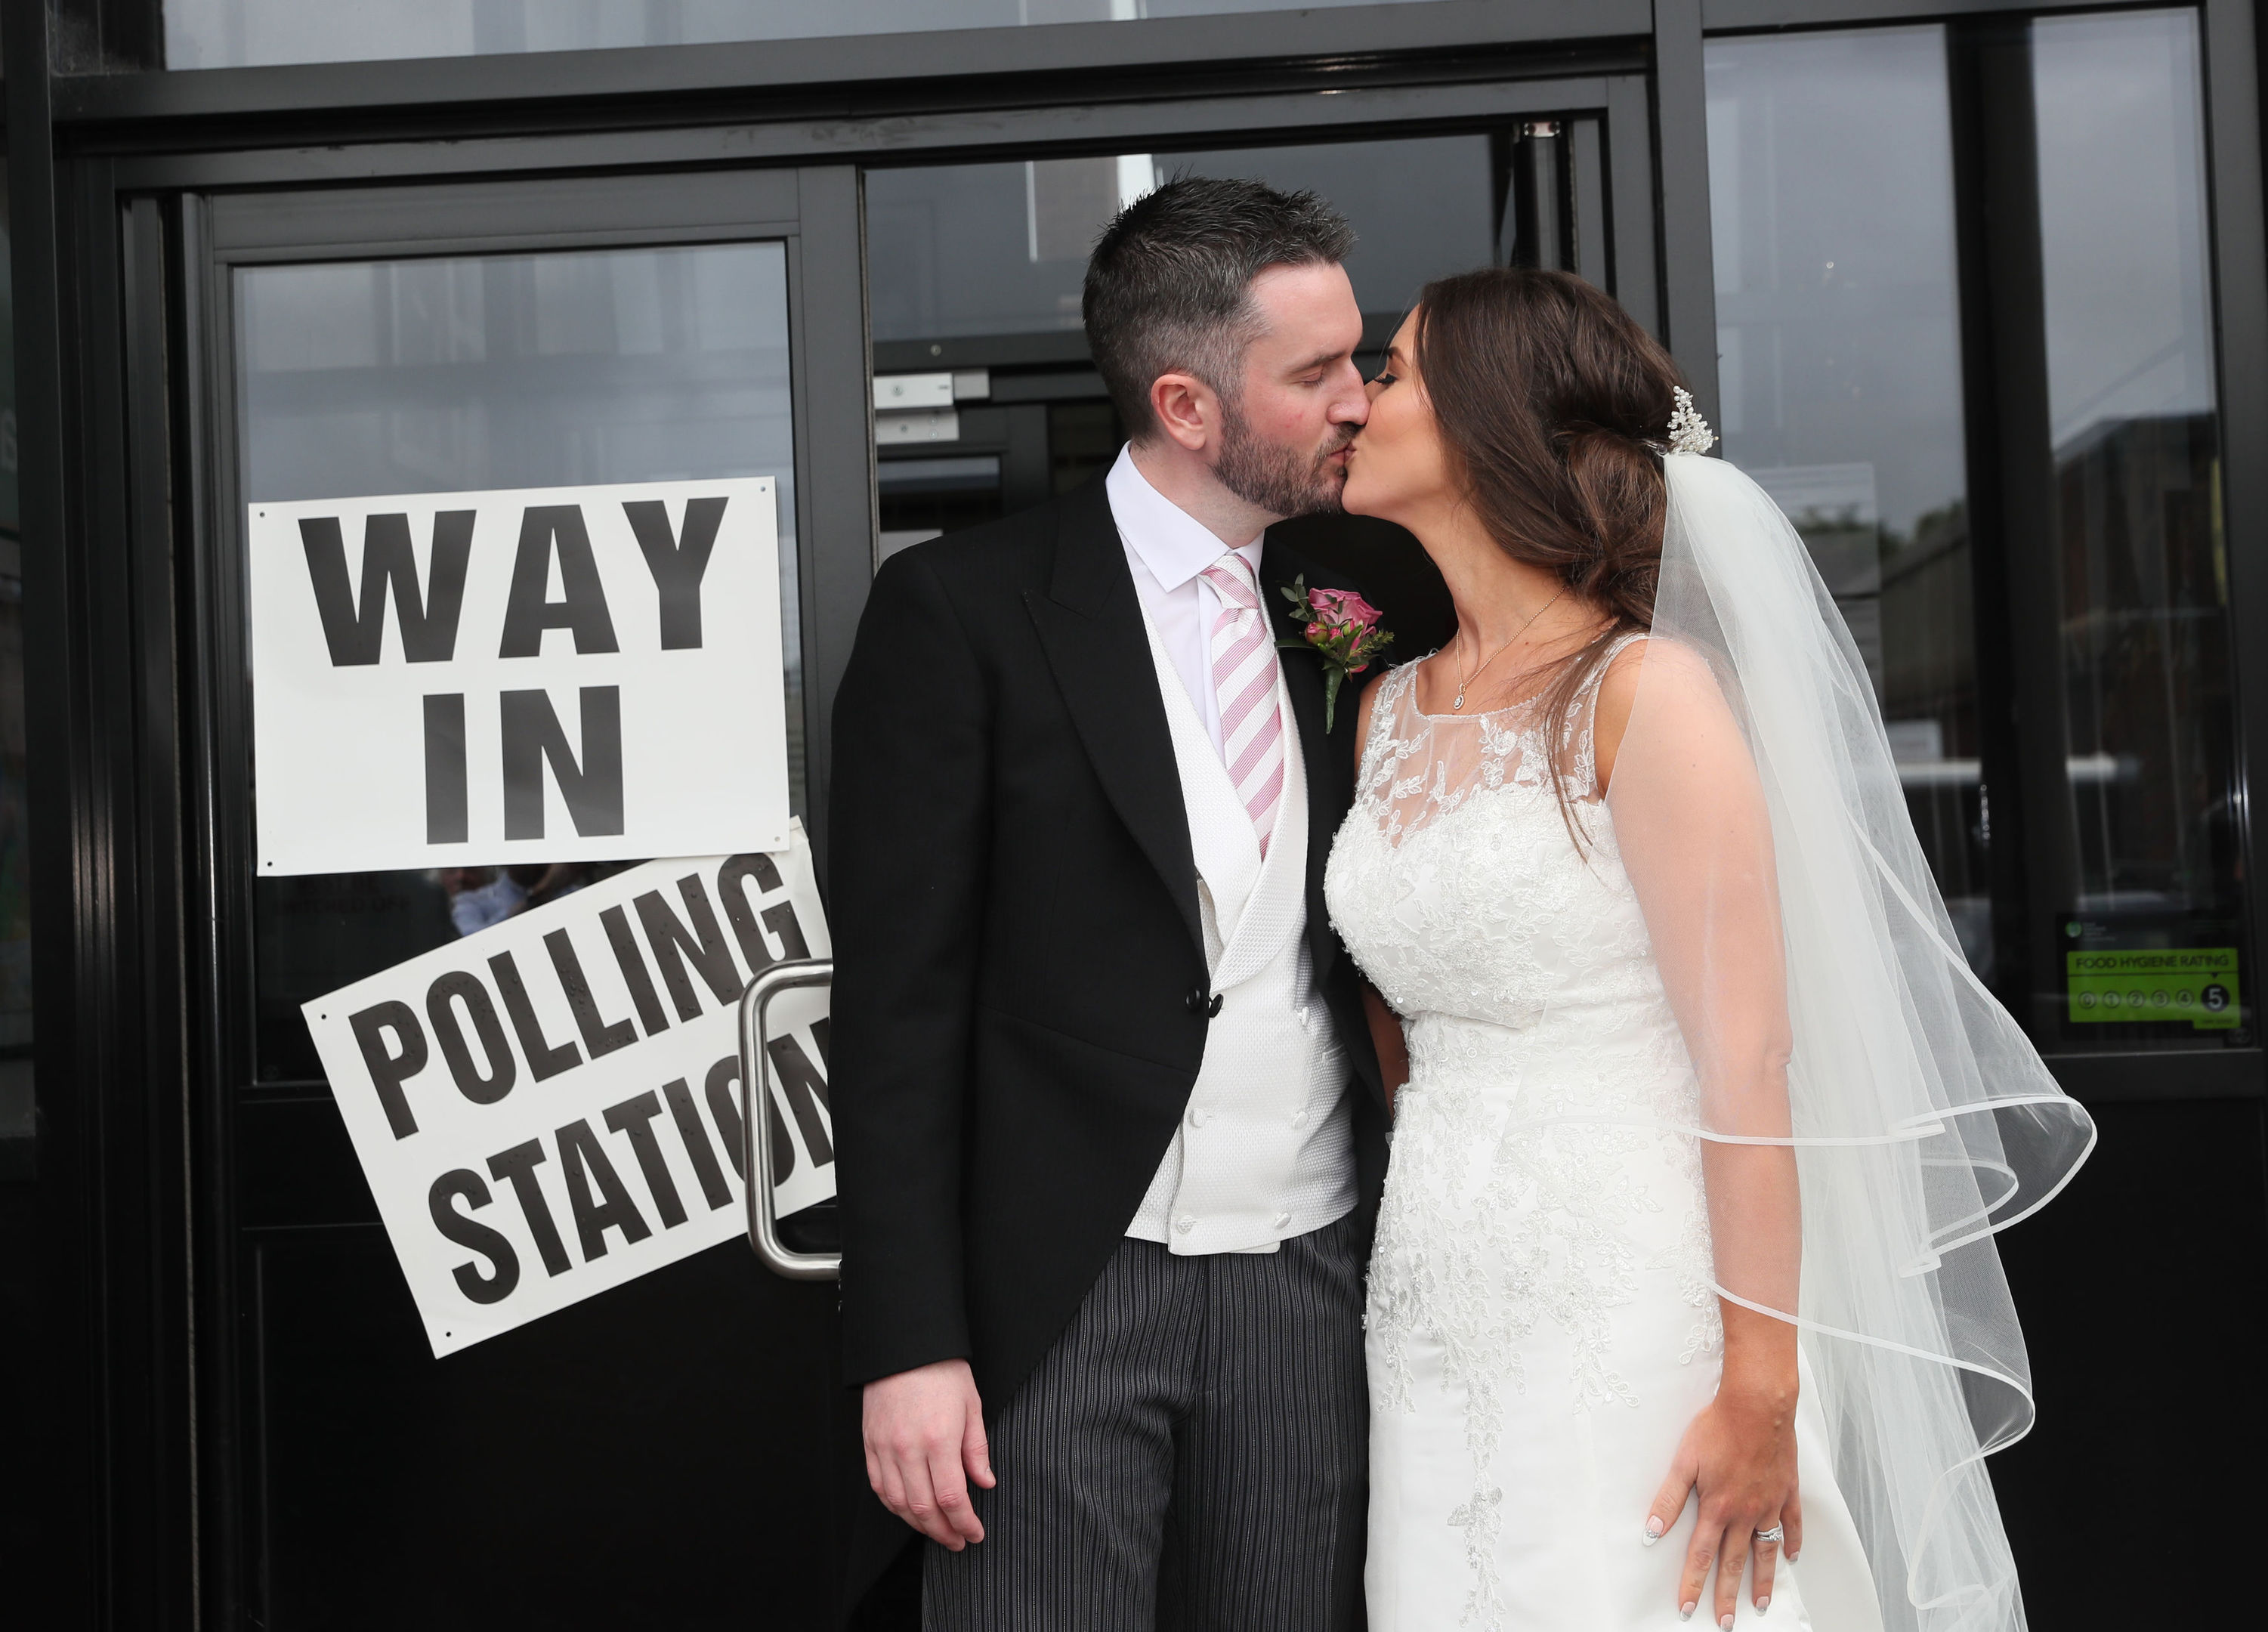 Alliance candidate for West Belfast Sorcha Eastwood casts her vote in the 2017 General Election, with her husband, Dale Shirlow, at a polling station in Lisburn, Northern Ireland, still wearing her wedding dress after they were married earlier in the day. (Brian Lawless/PA Wire)